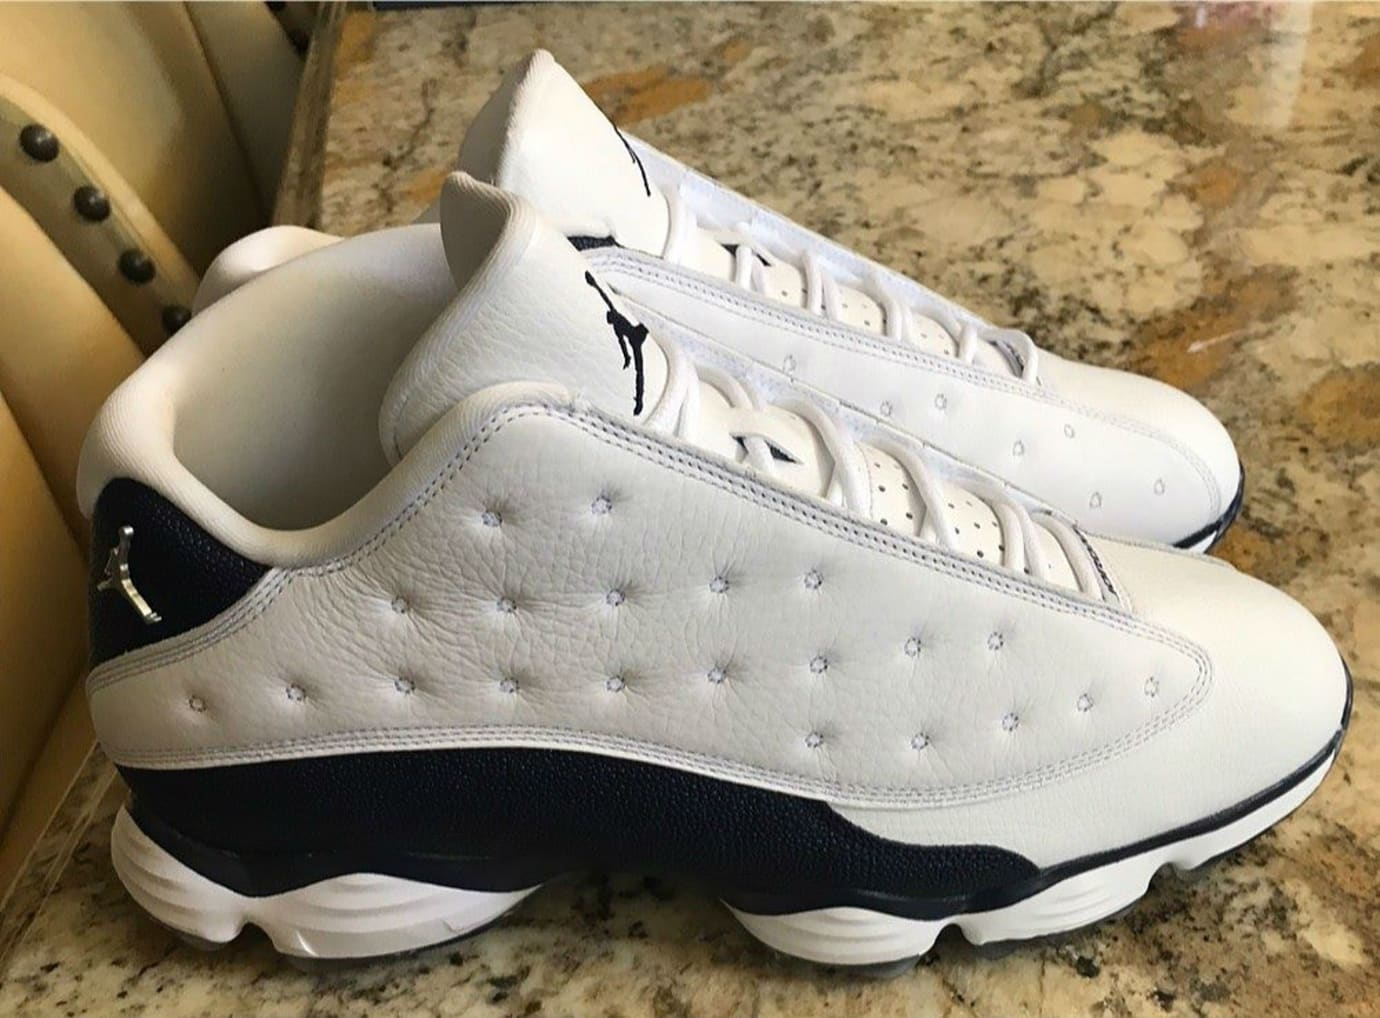 Air Jordan 13 Low Golf Shoes White Blue Profile